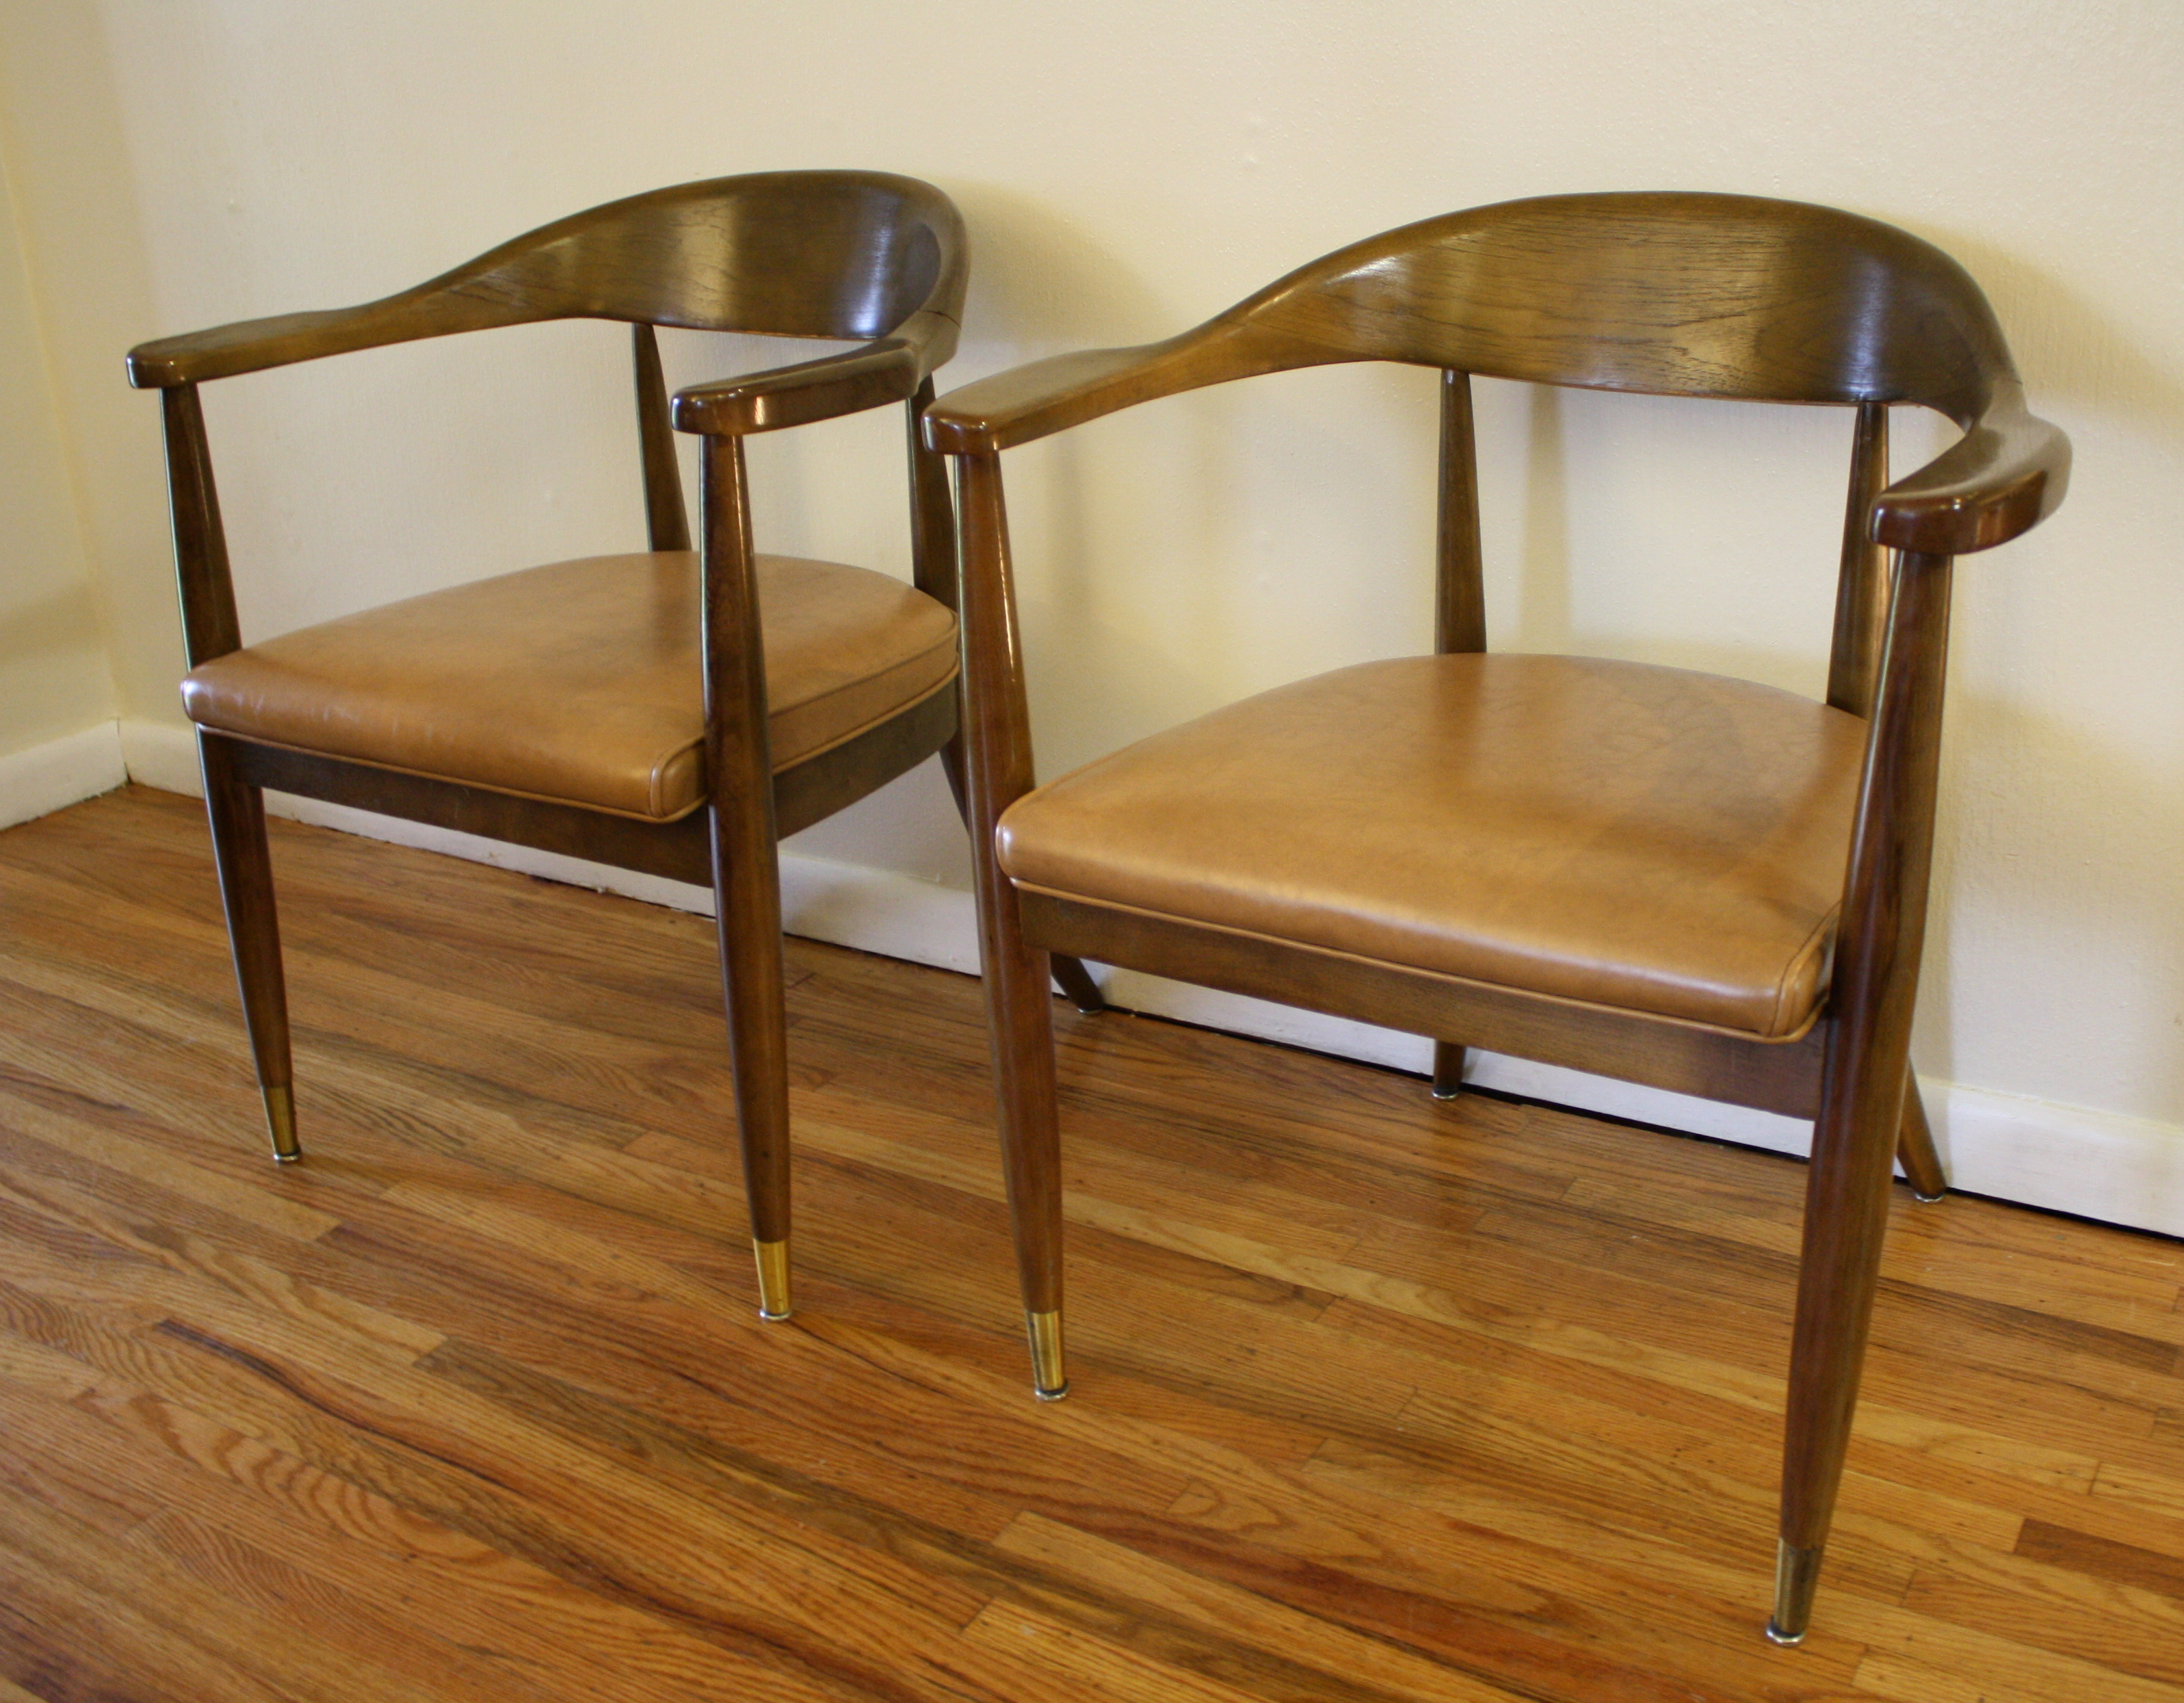 mcm upholstered Boling chairs 1 & Mid Century Modern Chairs by the Boling Chair Company | Picked Vintage